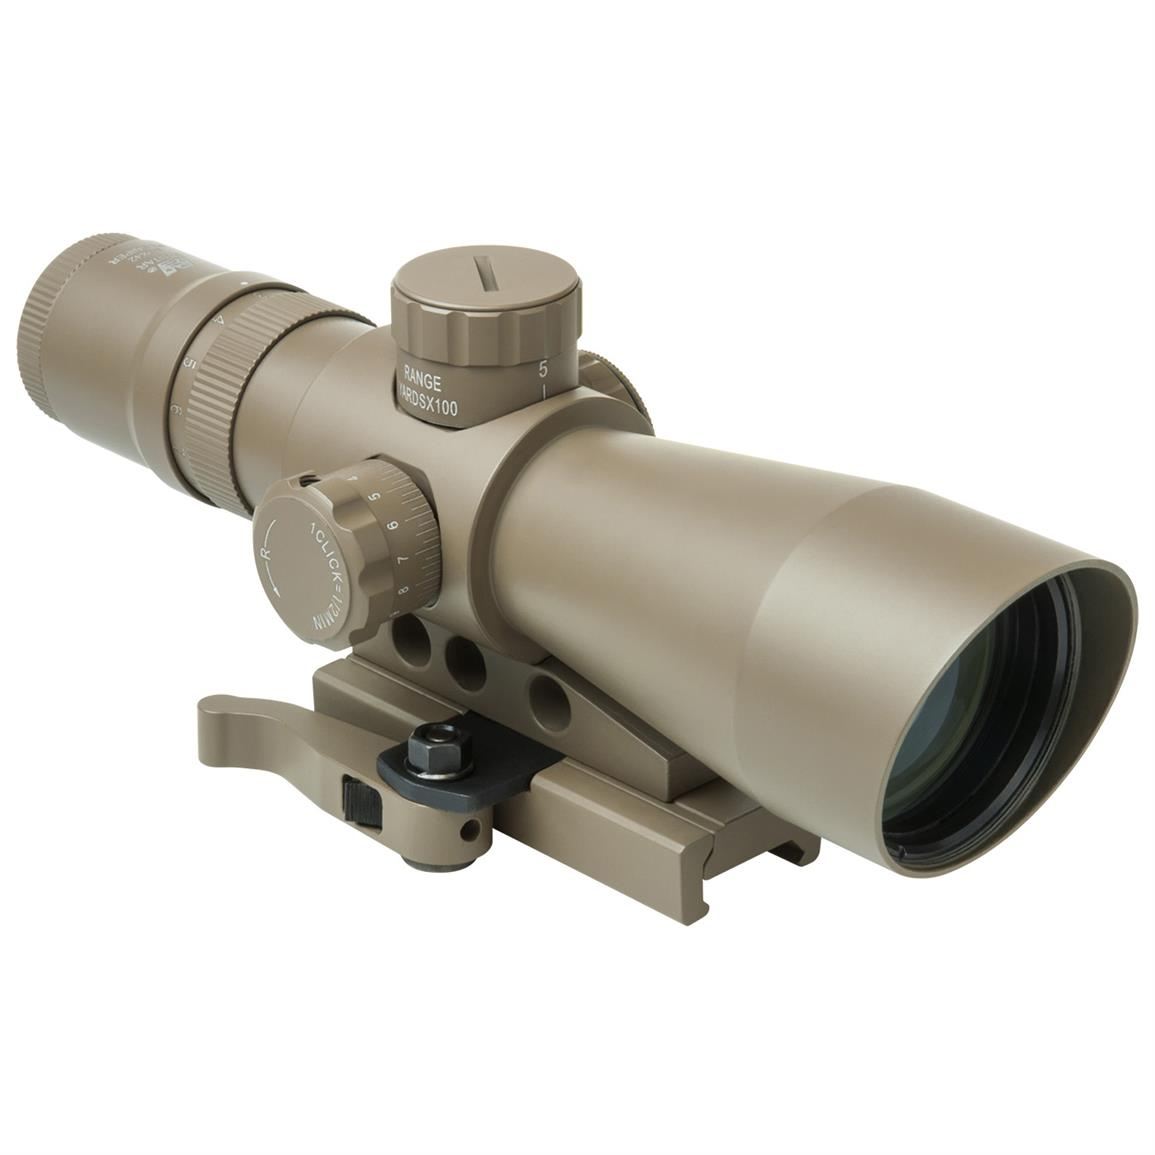 NcSTAR Mark III 3-9x42 Rifle Scope